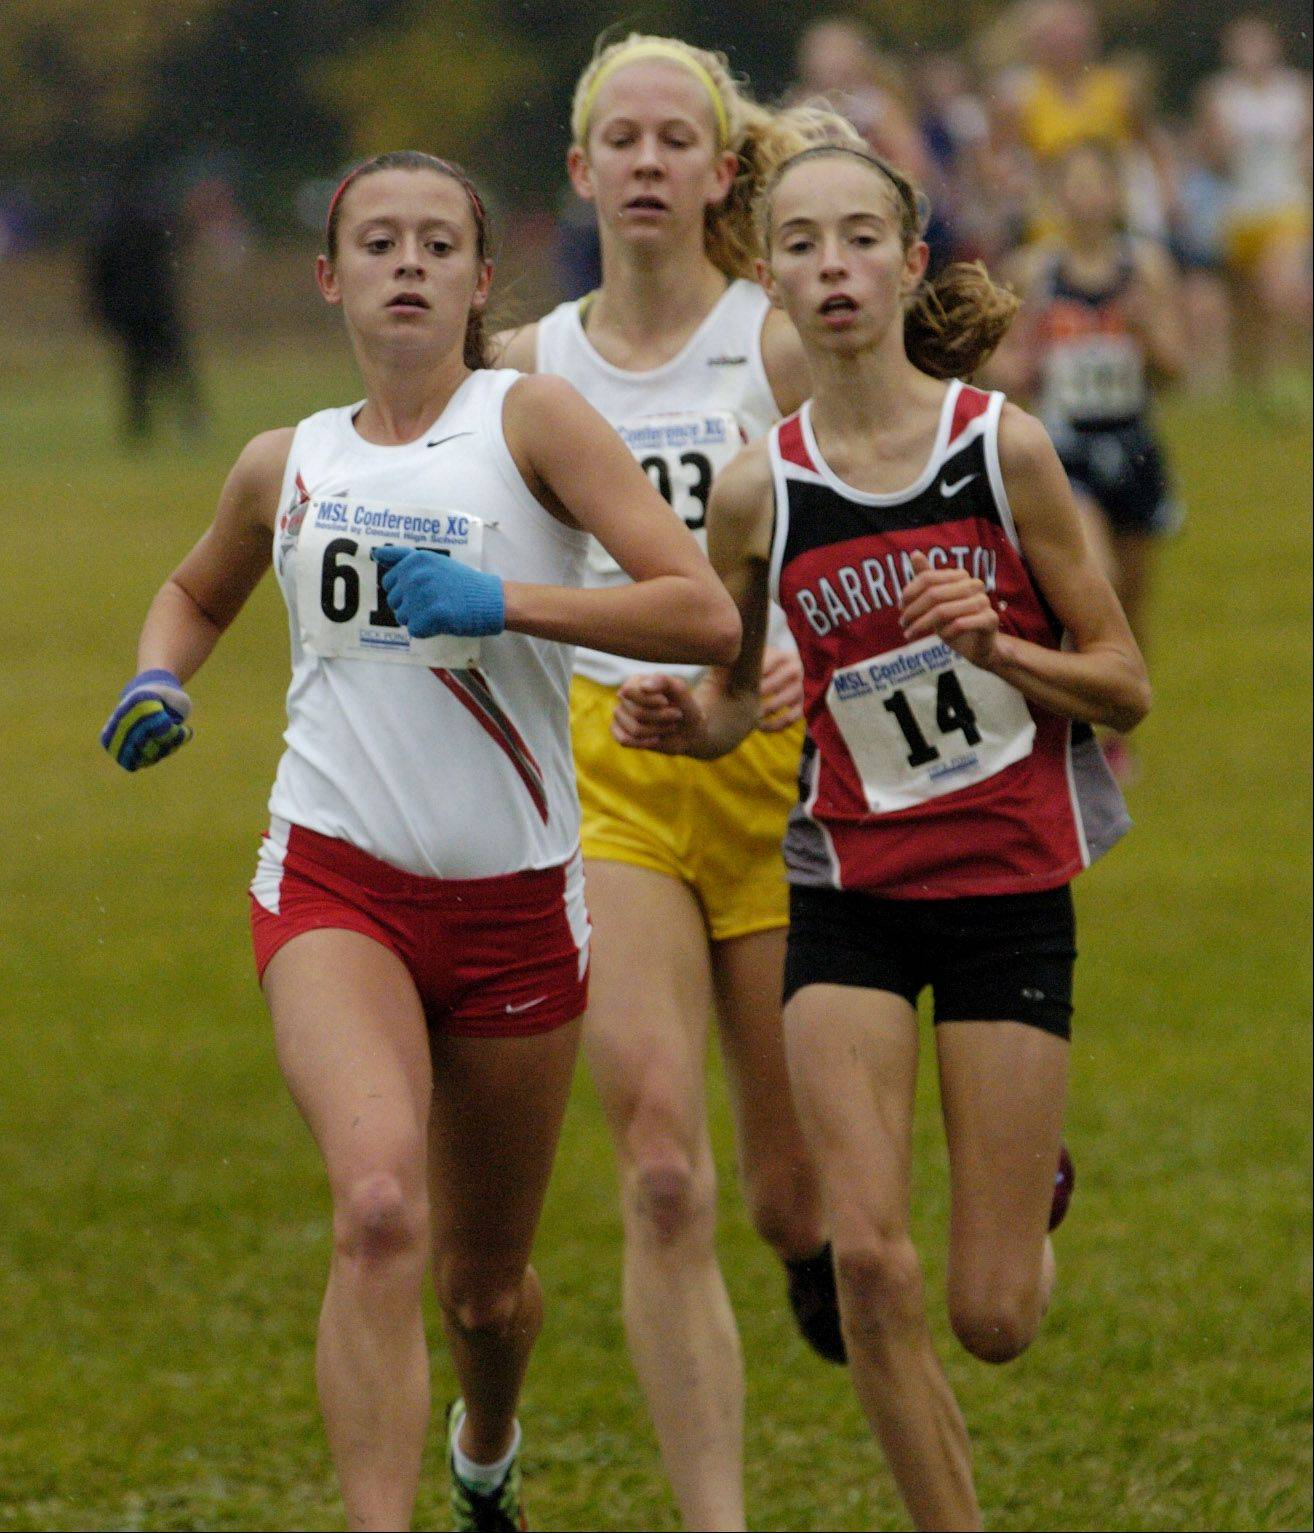 Palatine�s Tess Wasowicz leads Lauren Conroy of Barrington, right, and Caroline Kurdej of Schaumburg after first lap of girls varsity Mid-Suburban League cross country championship at Busse Woods.